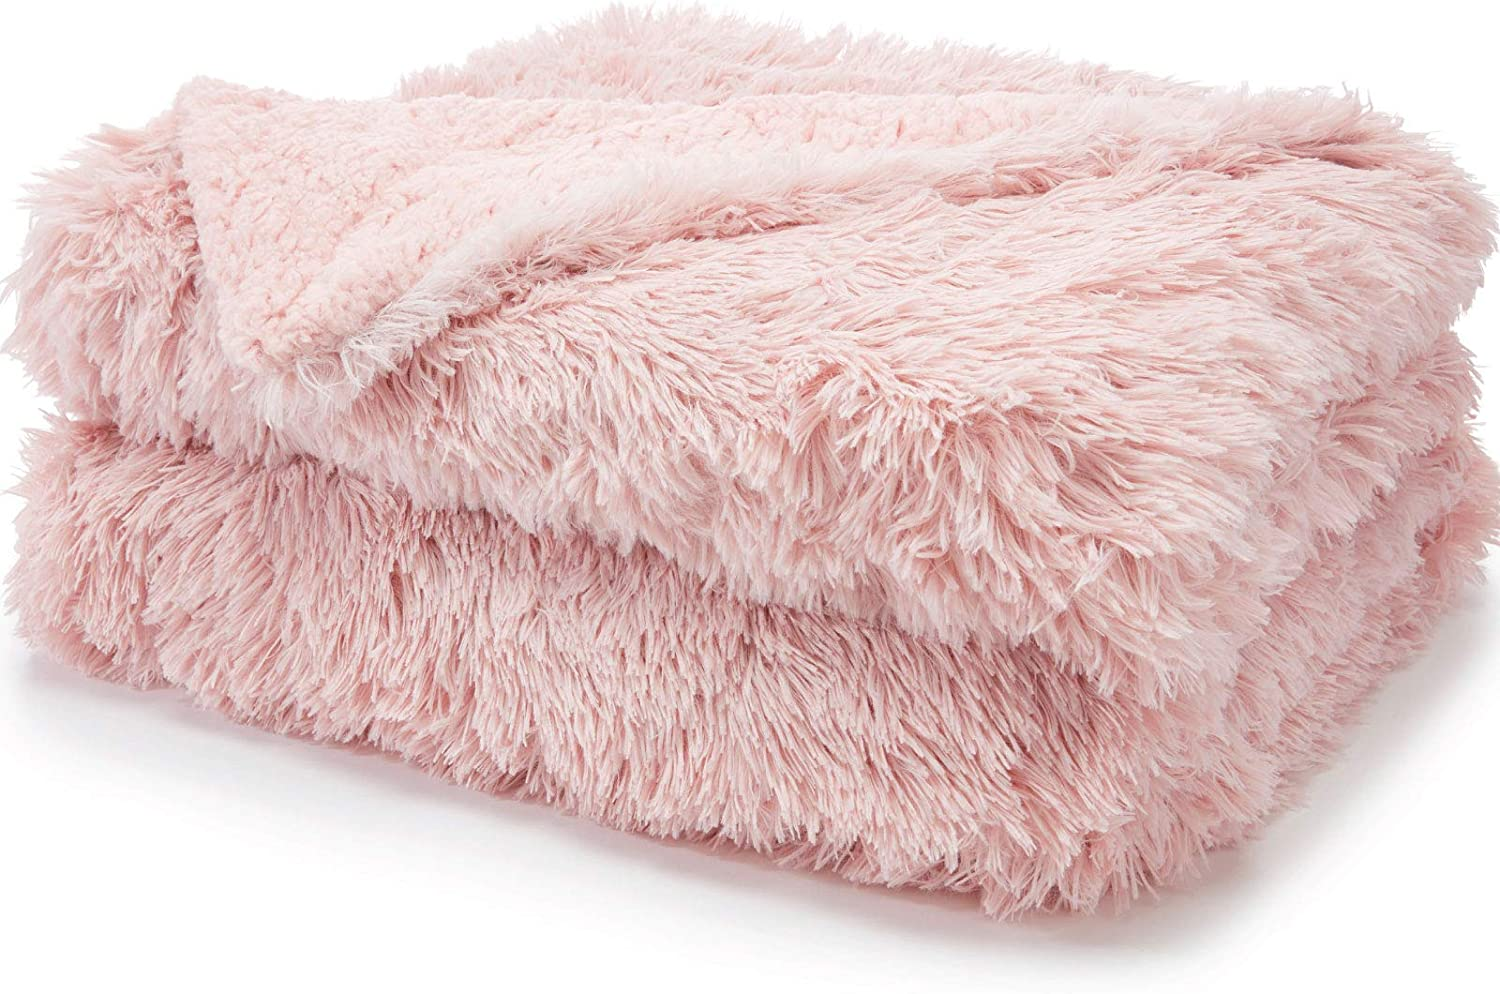 The Connecticut Home Company Shag Bed Throw Blanket, Twin Size, 80x60, Many Colors, Super Soft Large Plush Luxury Reversible Blankets, Warm Hypoallergenic Washable Throws for Couch or Beds, Dusty Rose